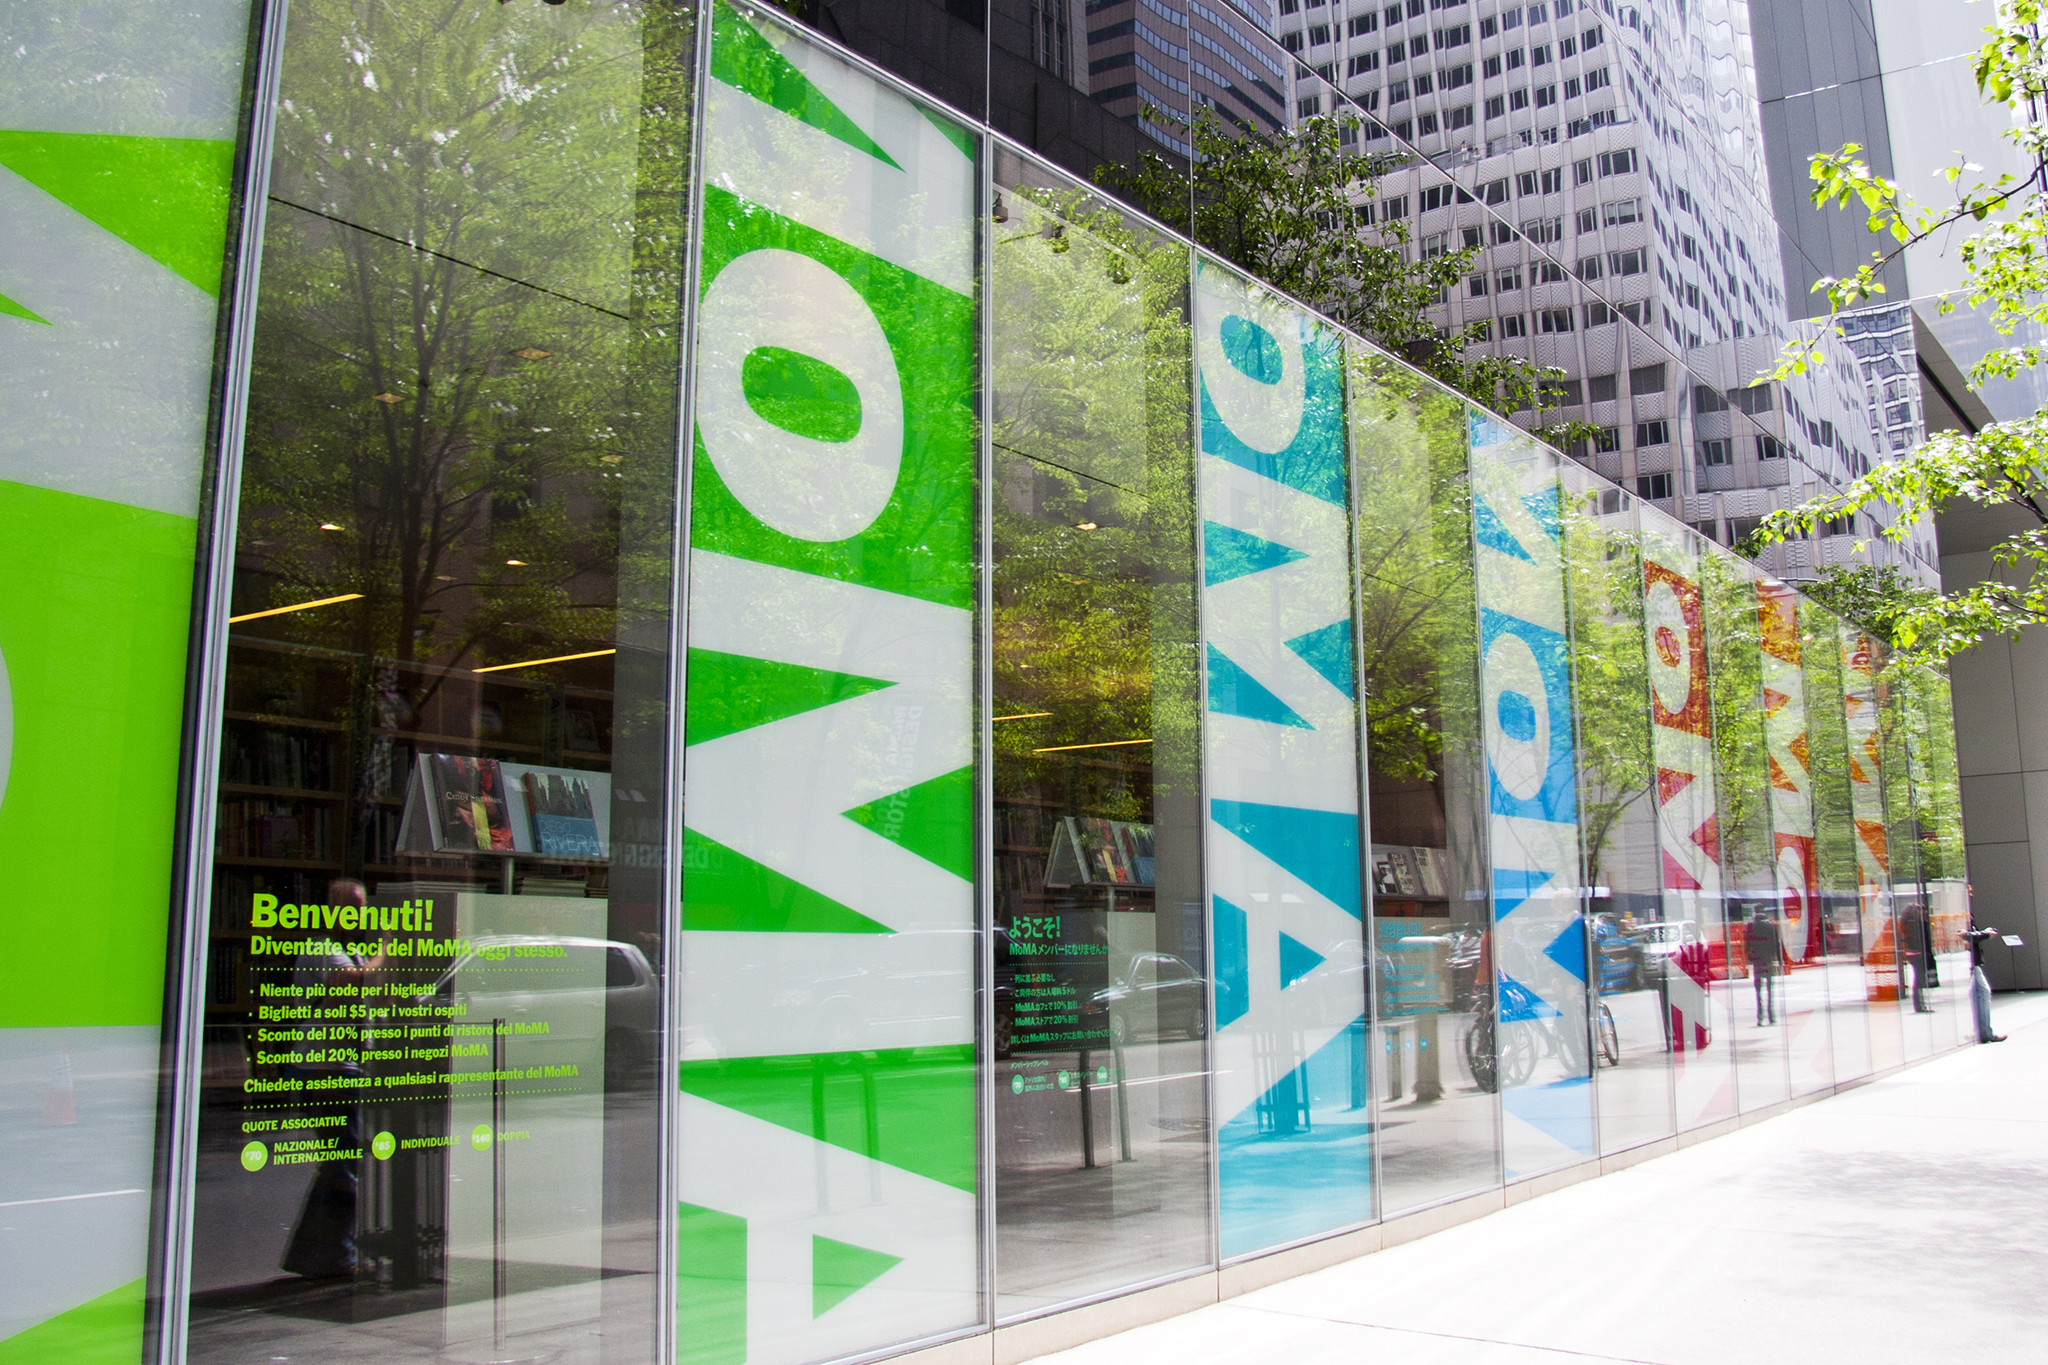 50 free events, MoMA